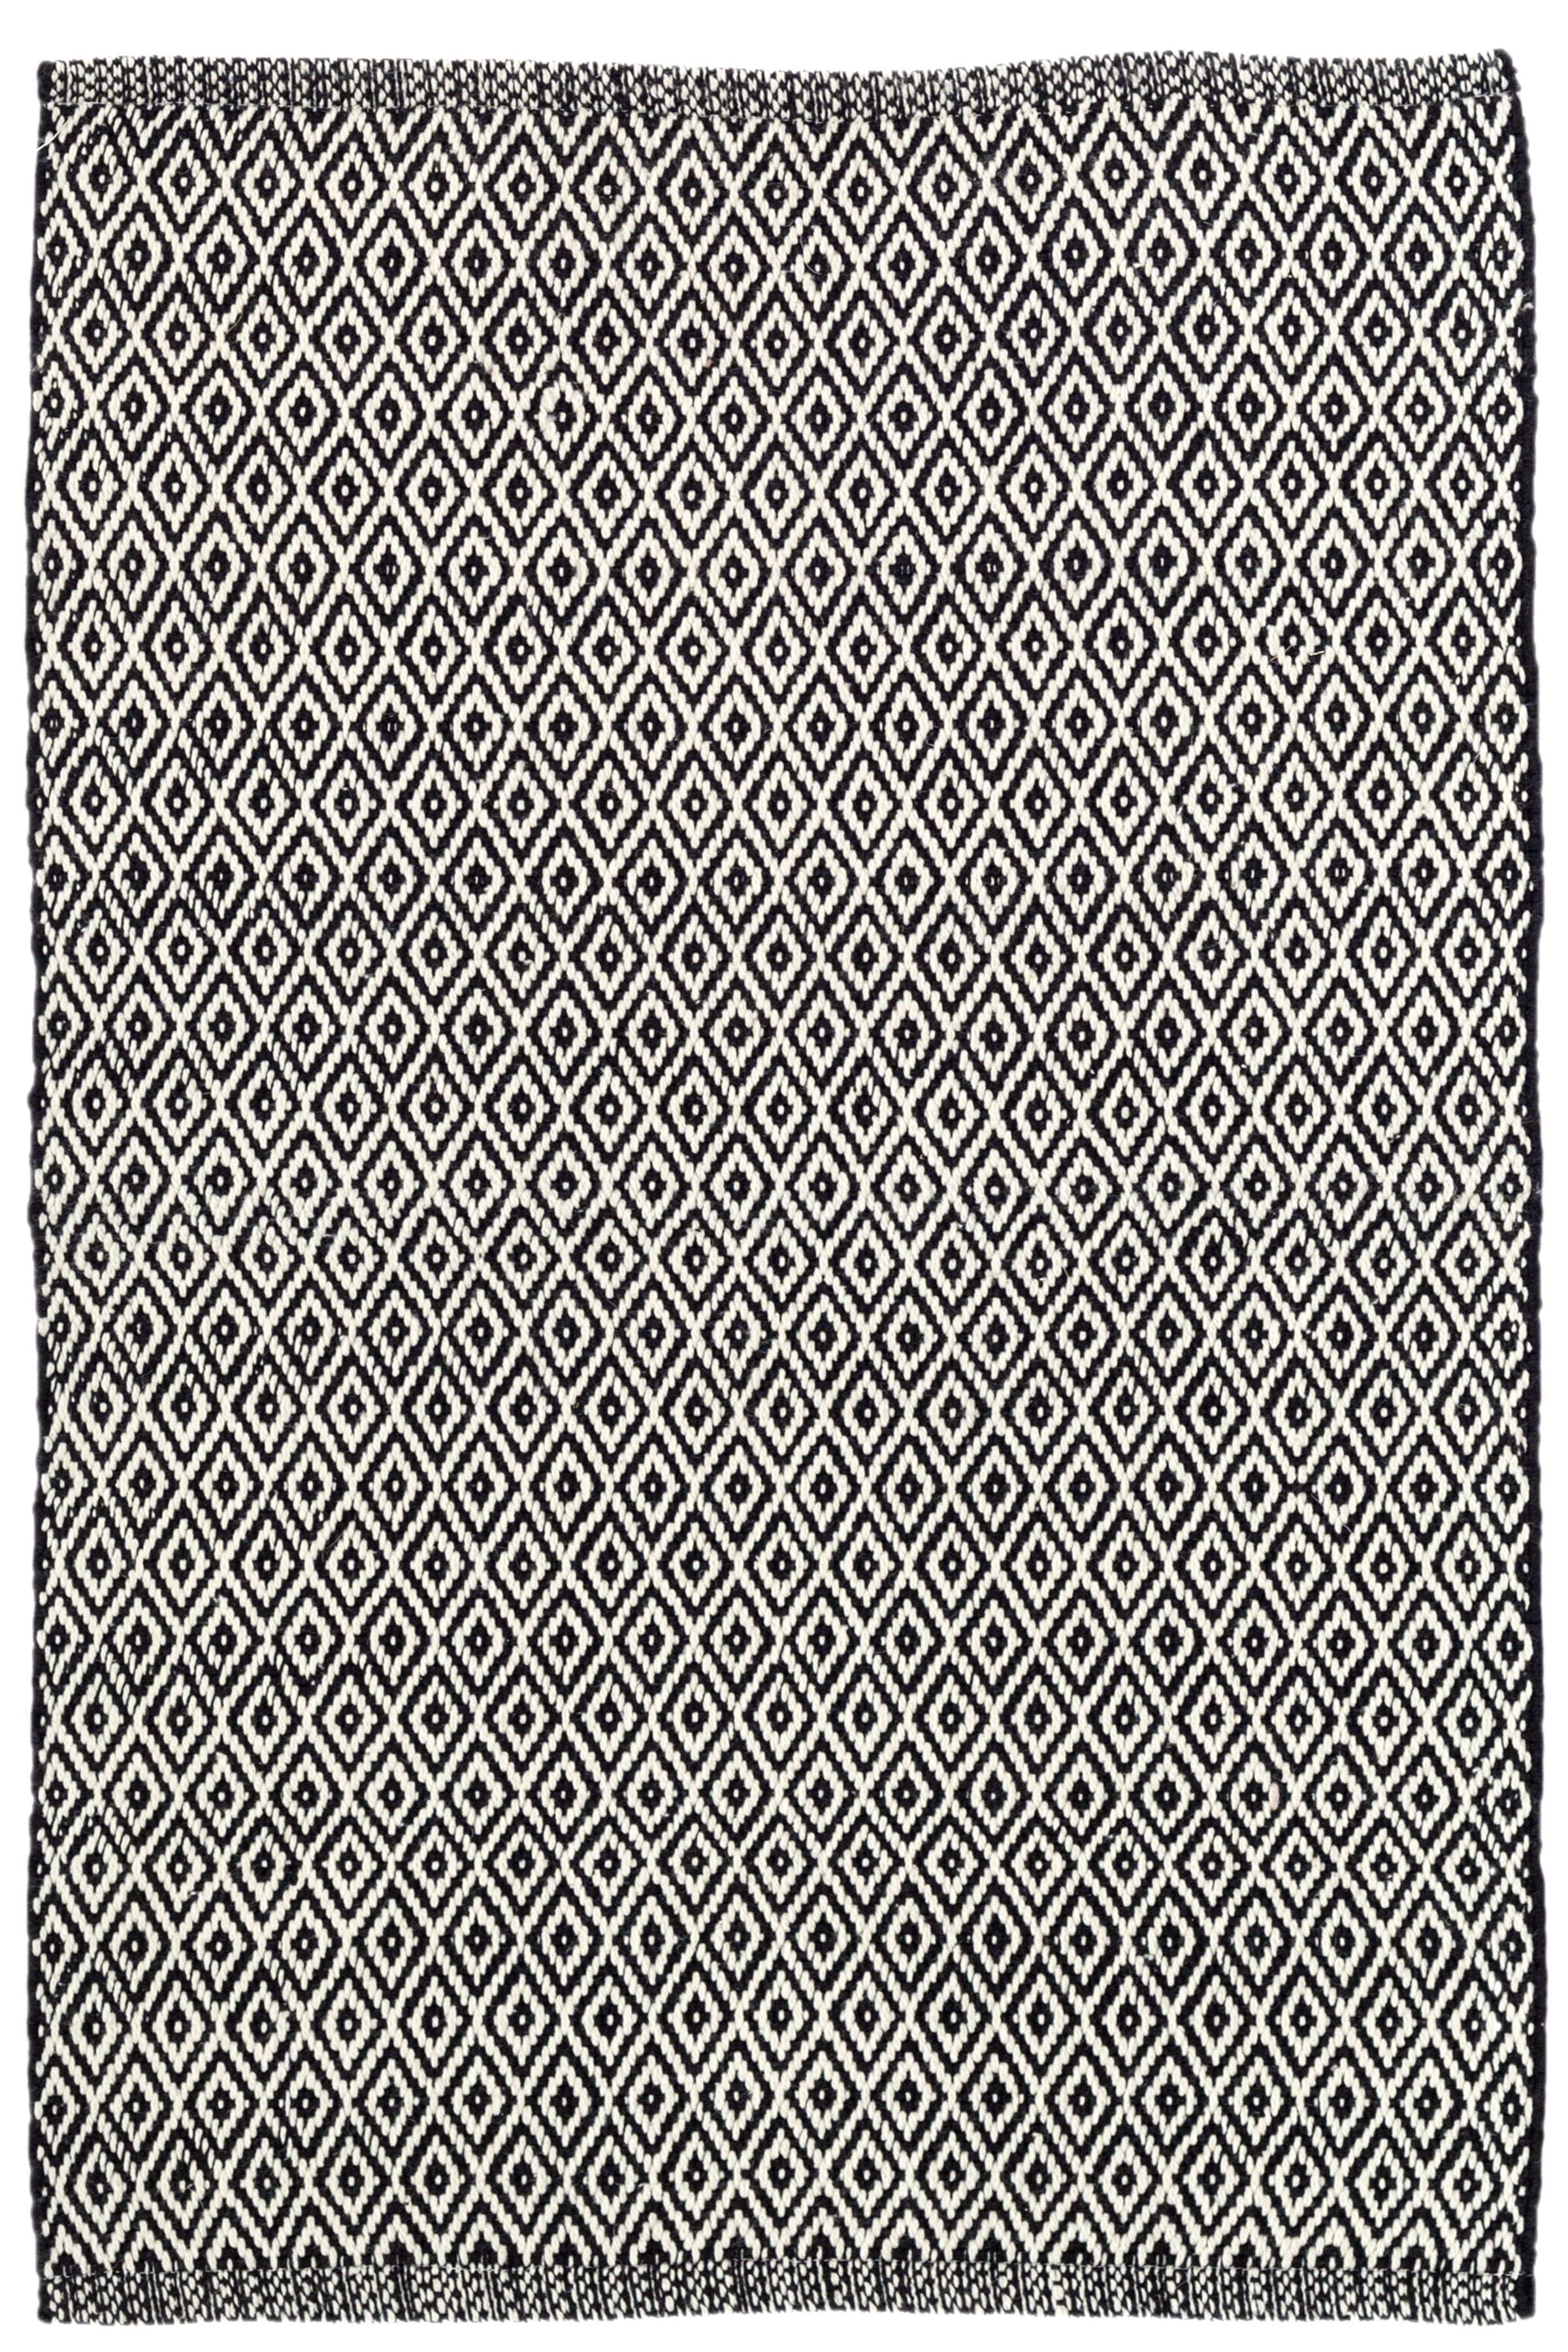 kolong wool share white htm design rugs cotton amp black honeycomb rug off